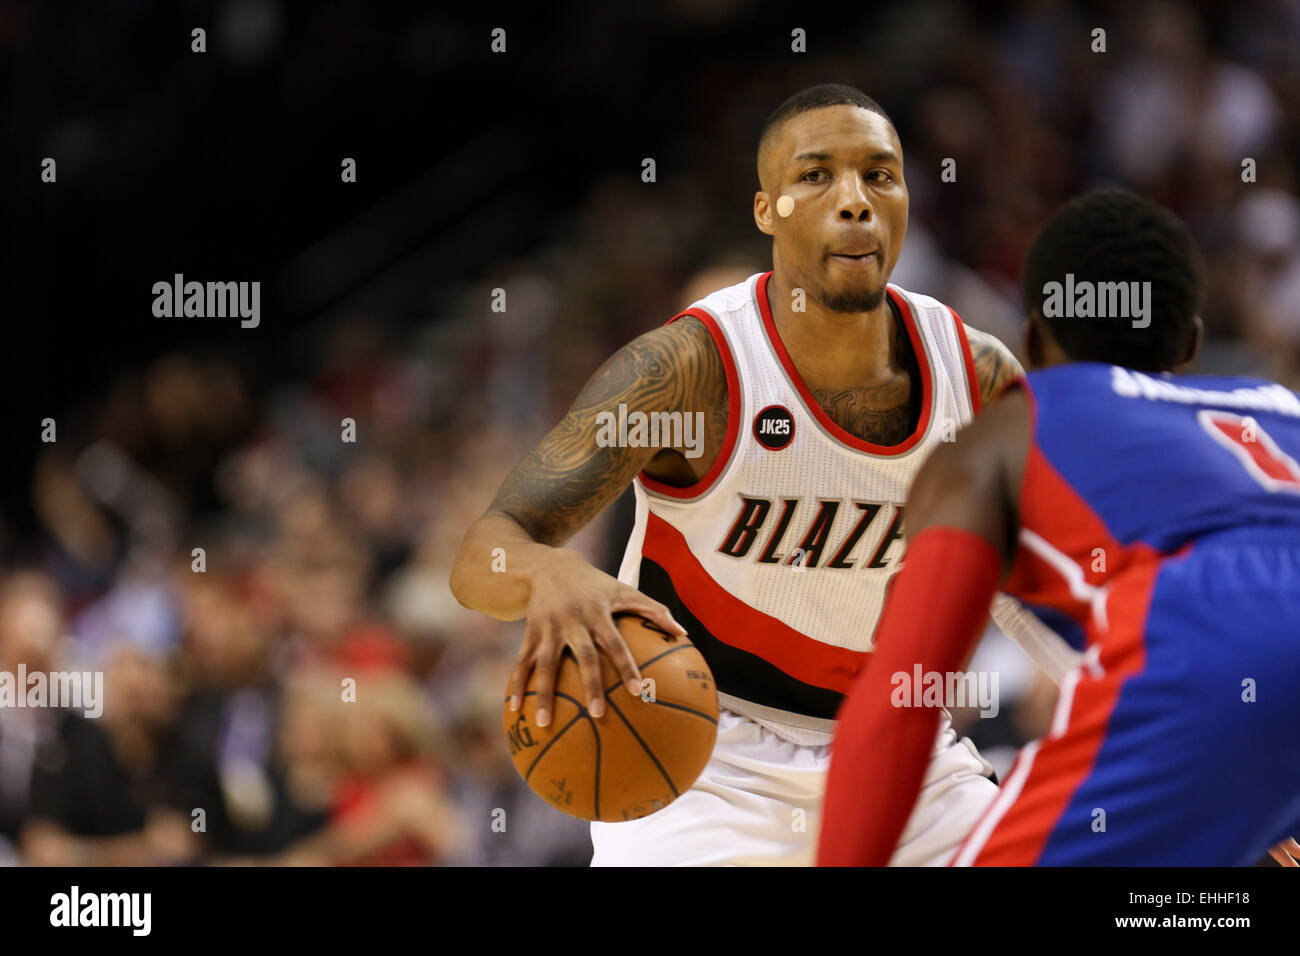 March 13, 2015 - DAMIAN LILLARD (0) looks to pass. The Portland Trail Blazers play the Detroit Pistons at the Moda Stock Photo